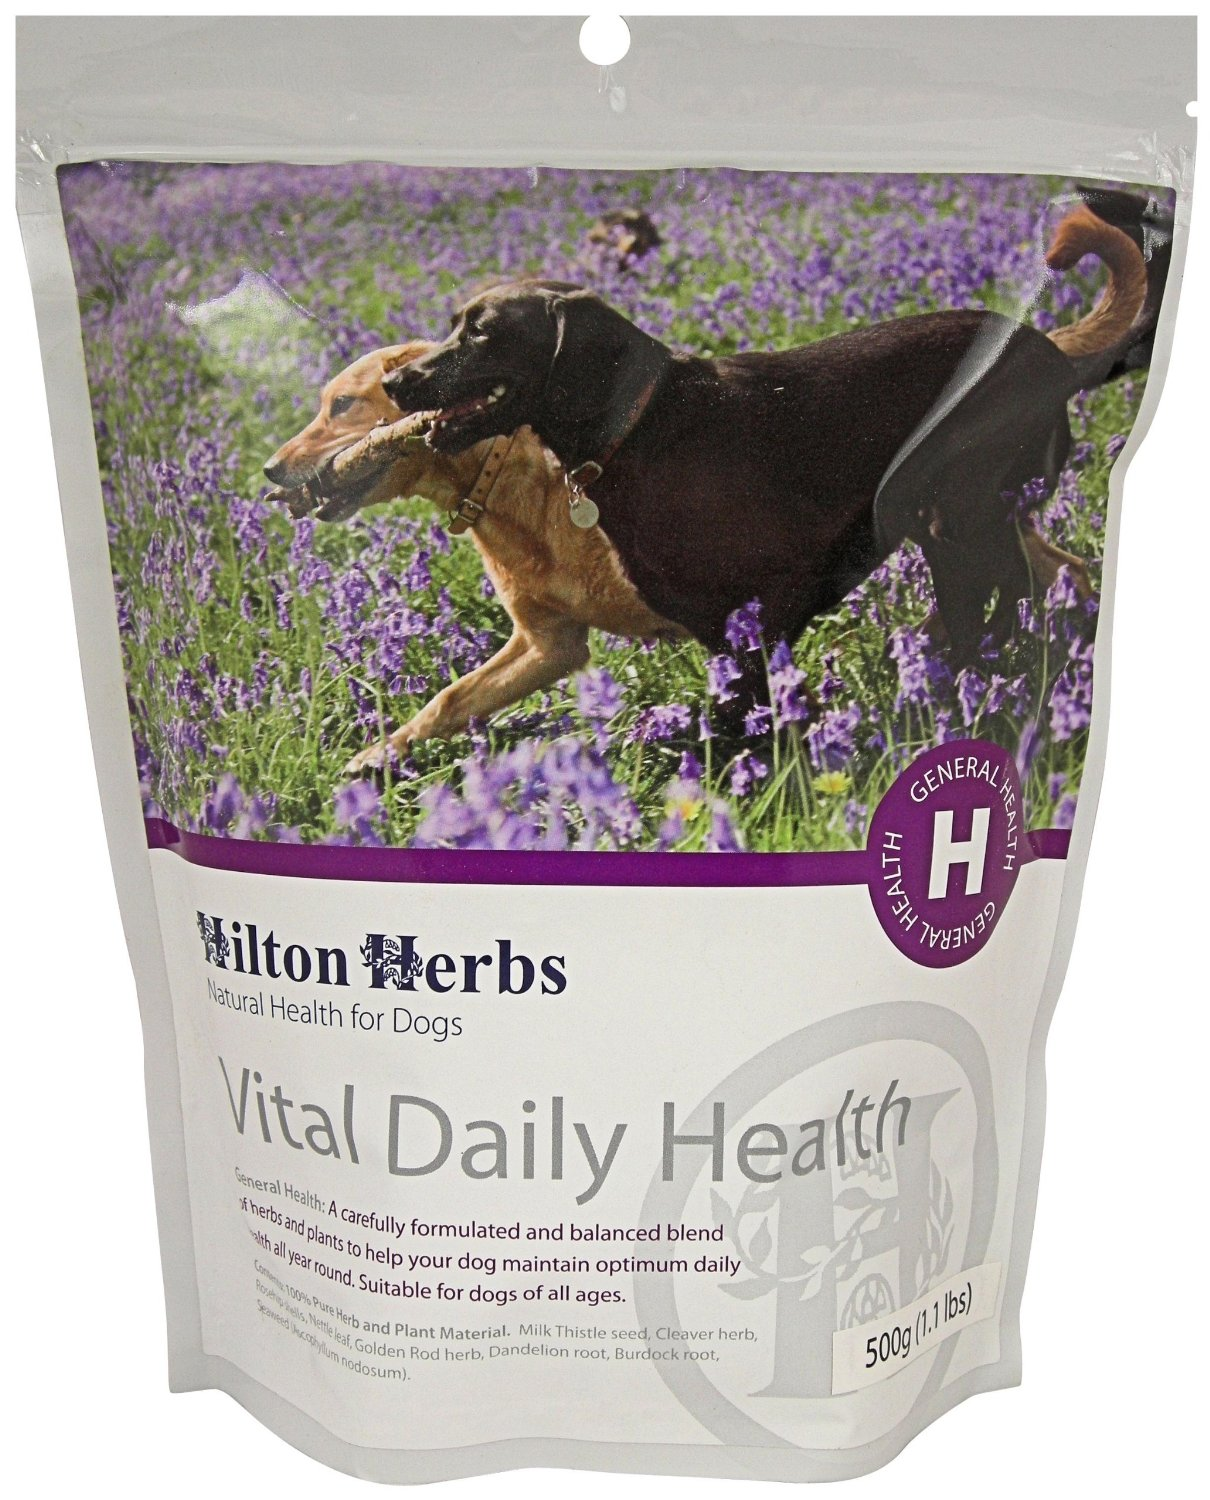 Hilton Herbs Vital Daily Health for Dogs